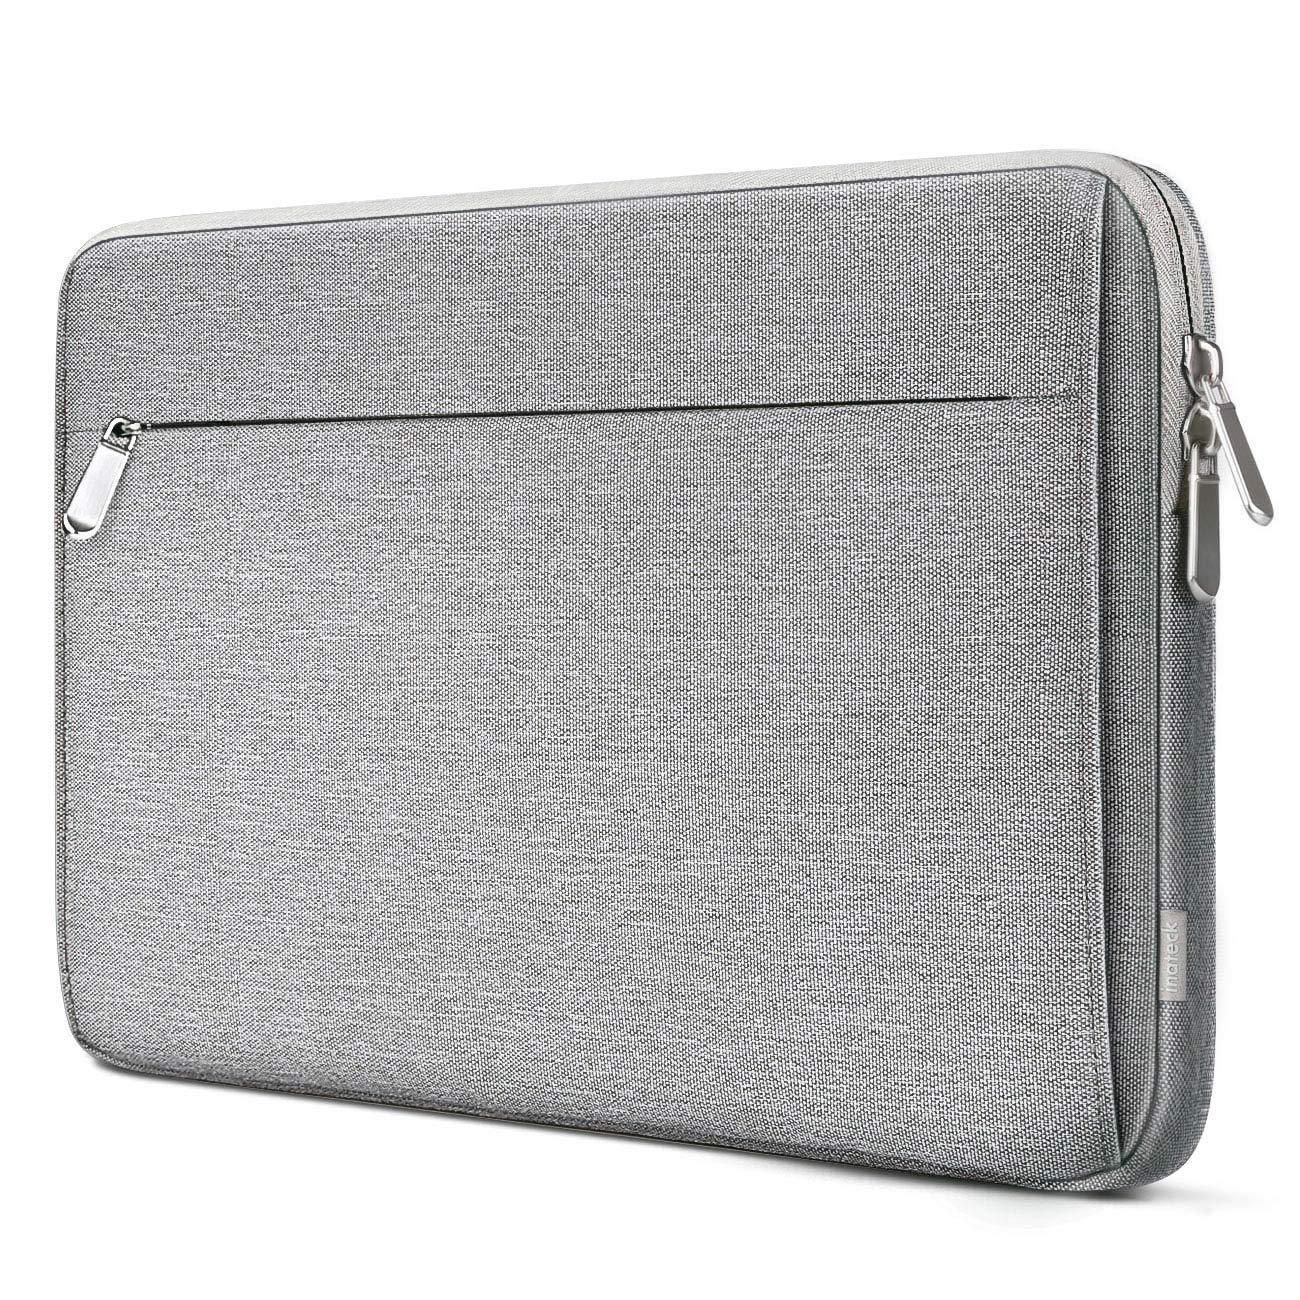 Inateck 360° All-Round Protection Laptop Sleeve Case Shockproof Bag Compatible 12.3'' Surface Pro 6/5/4/3, 2018 MacBook Air 13'', 13'' MacBook Pro 2018/2017/2016, Tablets/Ultrabooks/Notbooks by Inateck